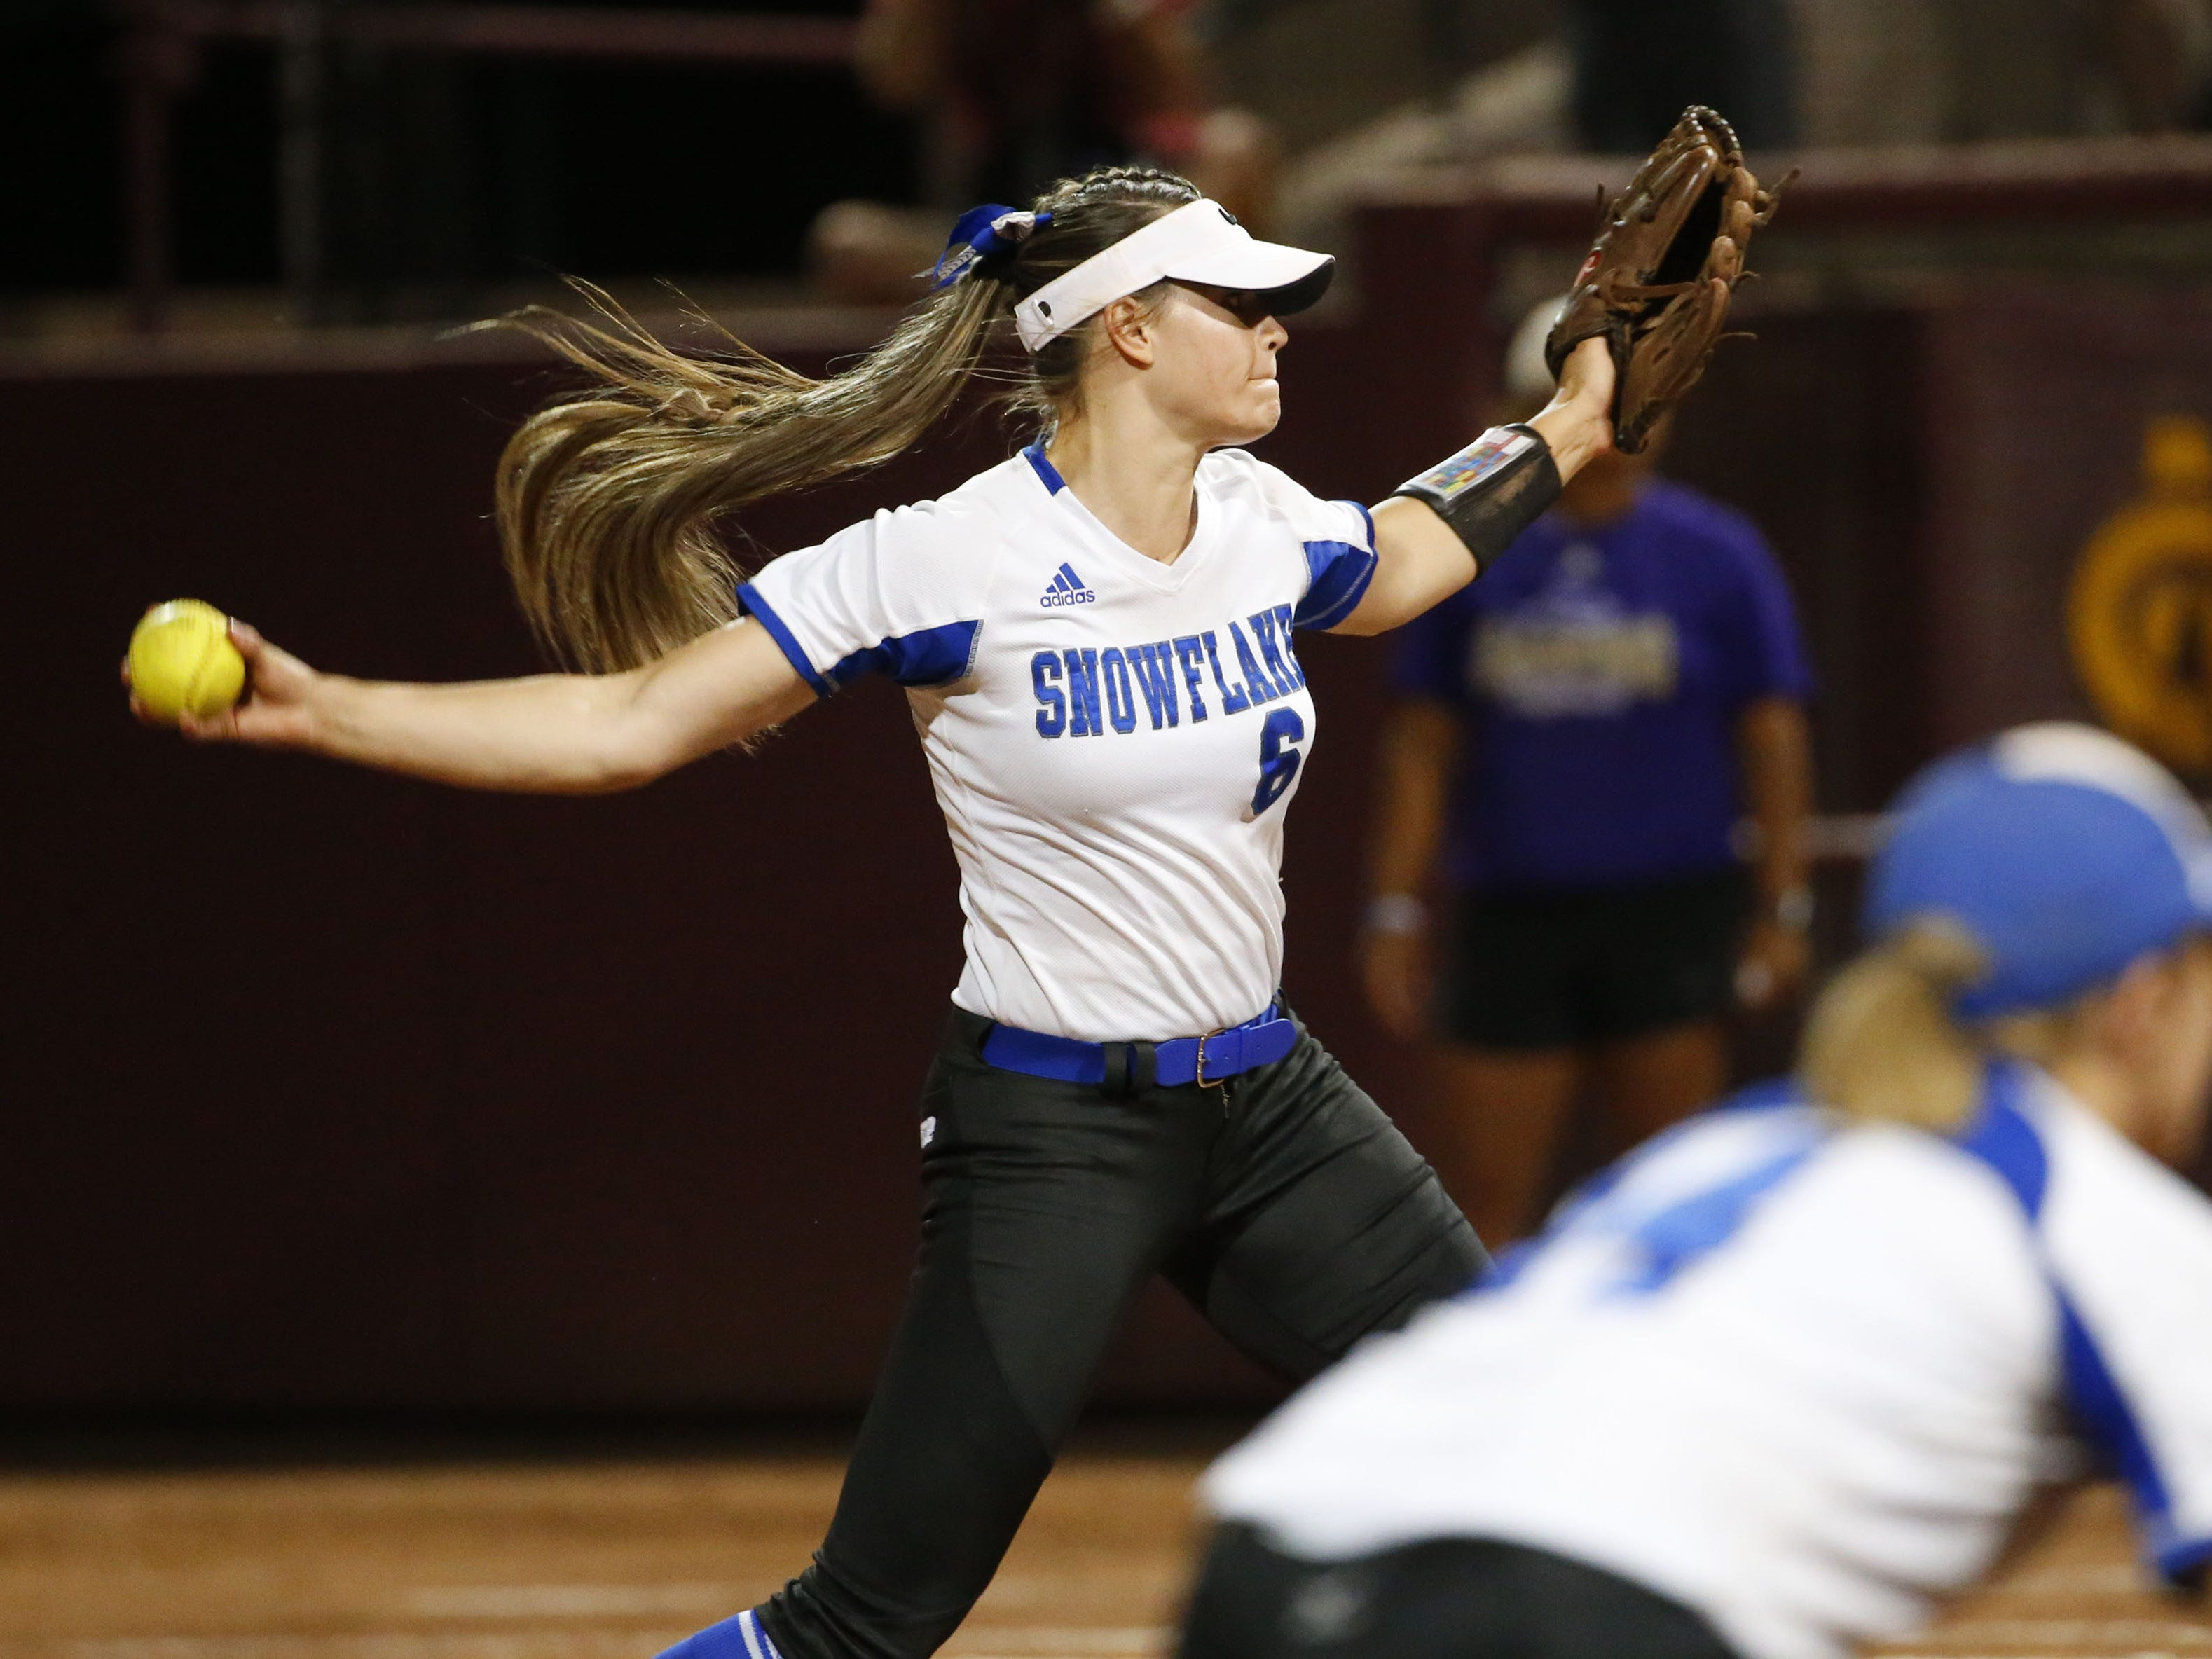 Snowflake pitcher Anna Berger (6) throws against Sabino during the 3A softball state championship game in Tempe May 6, 2019.